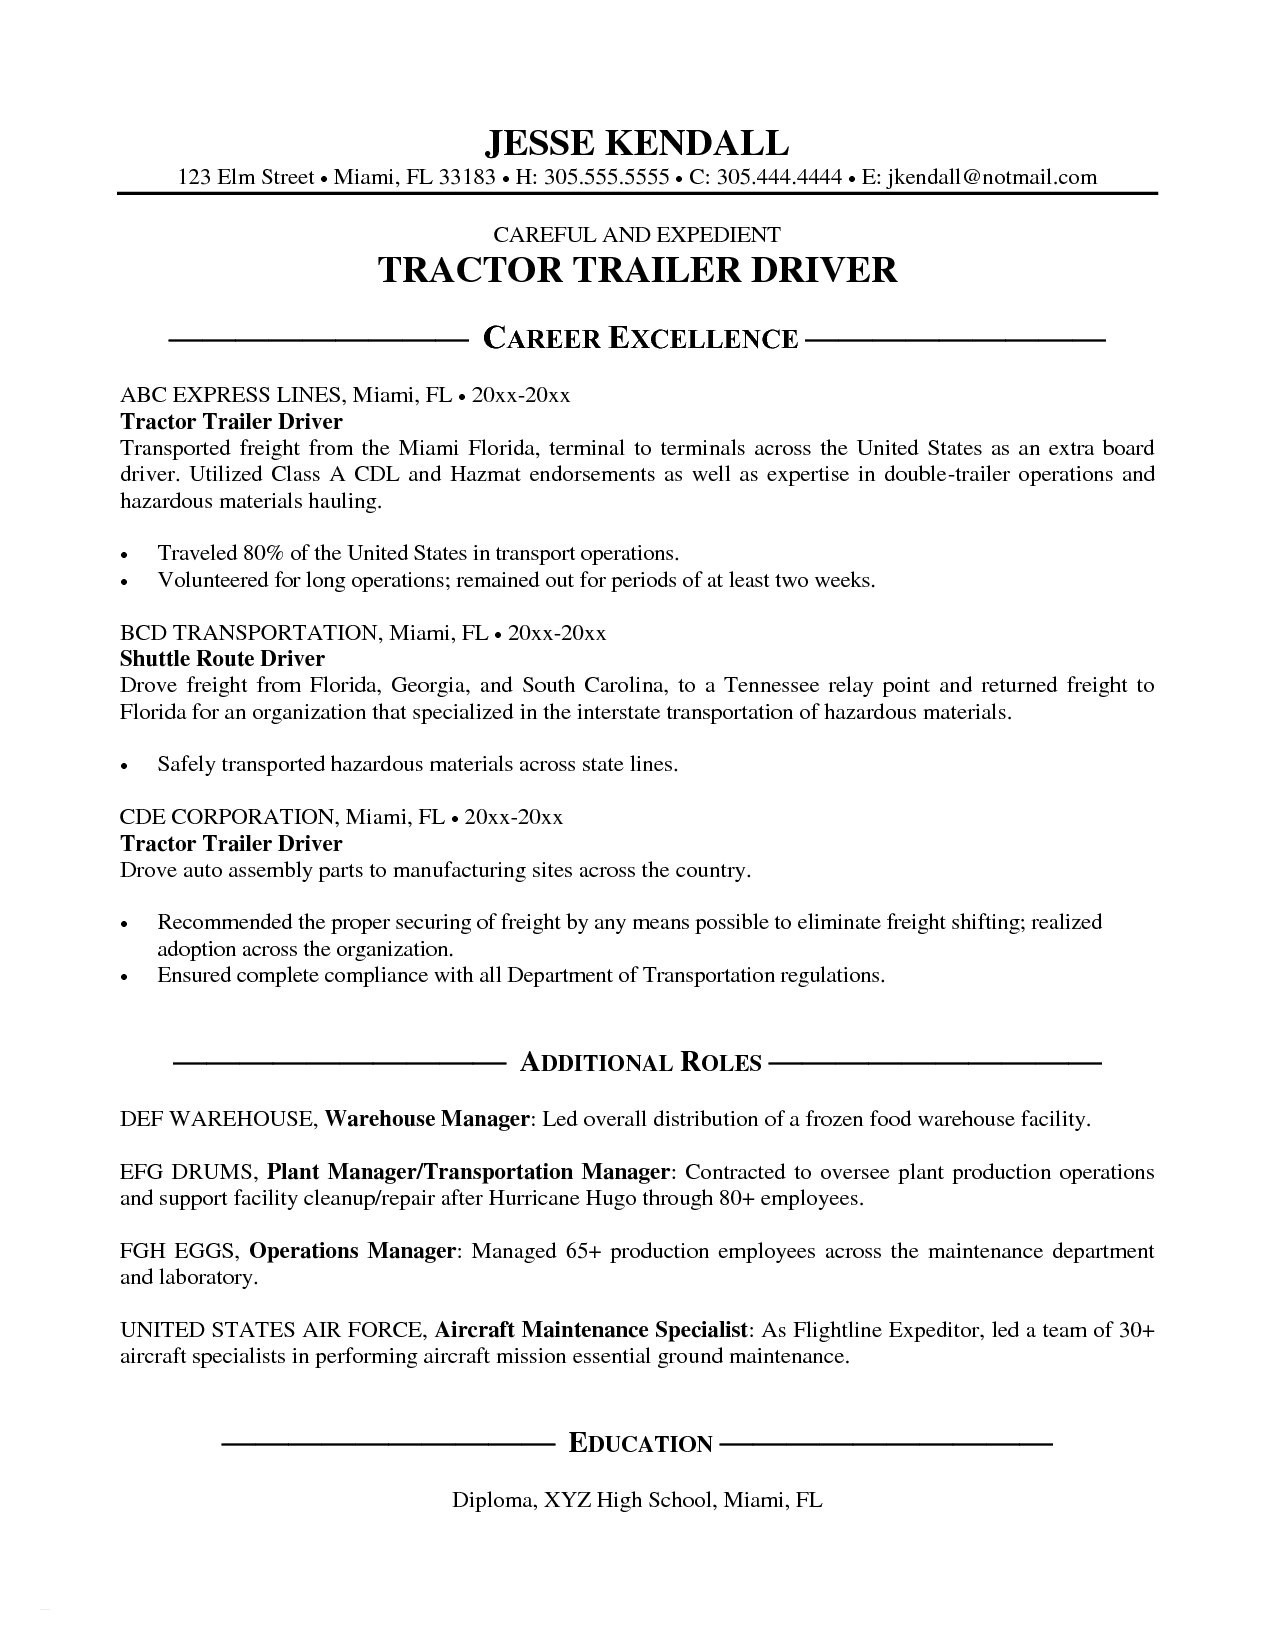 Cdl Truck Driver Job Description for Resume - Cdl Truck Driver Resume New Simple Resume for Cdl Truck Driver